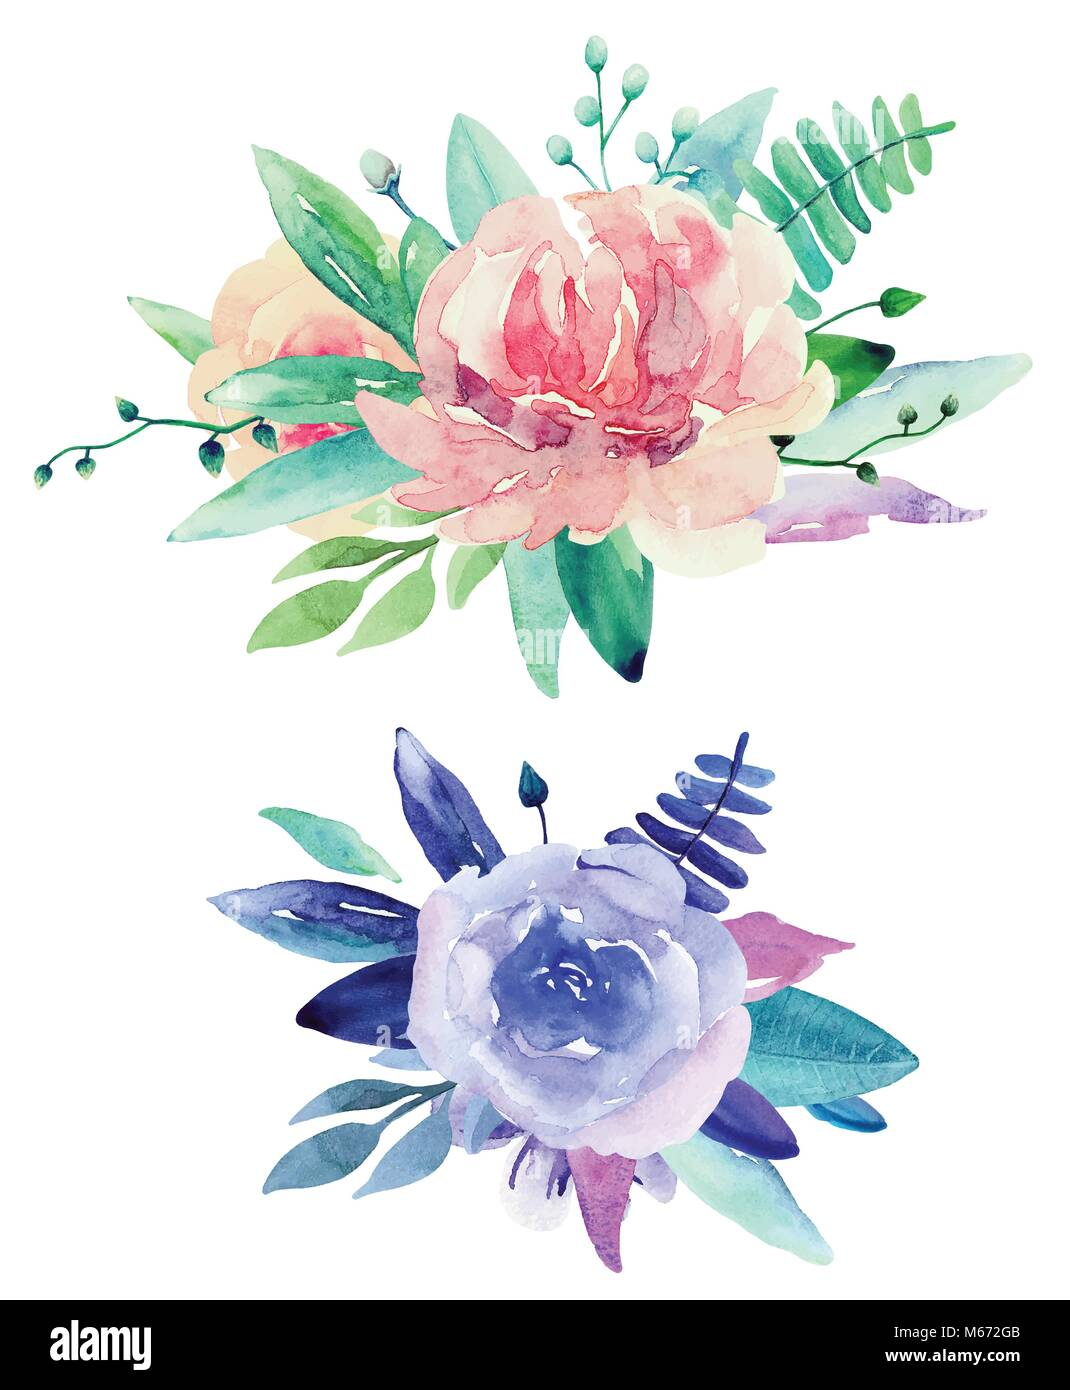 Watercolor floral bouquets vector clip art pink and purple flowers watercolor floral bouquets vector clip art pink and purple flowers clipart izmirmasajfo